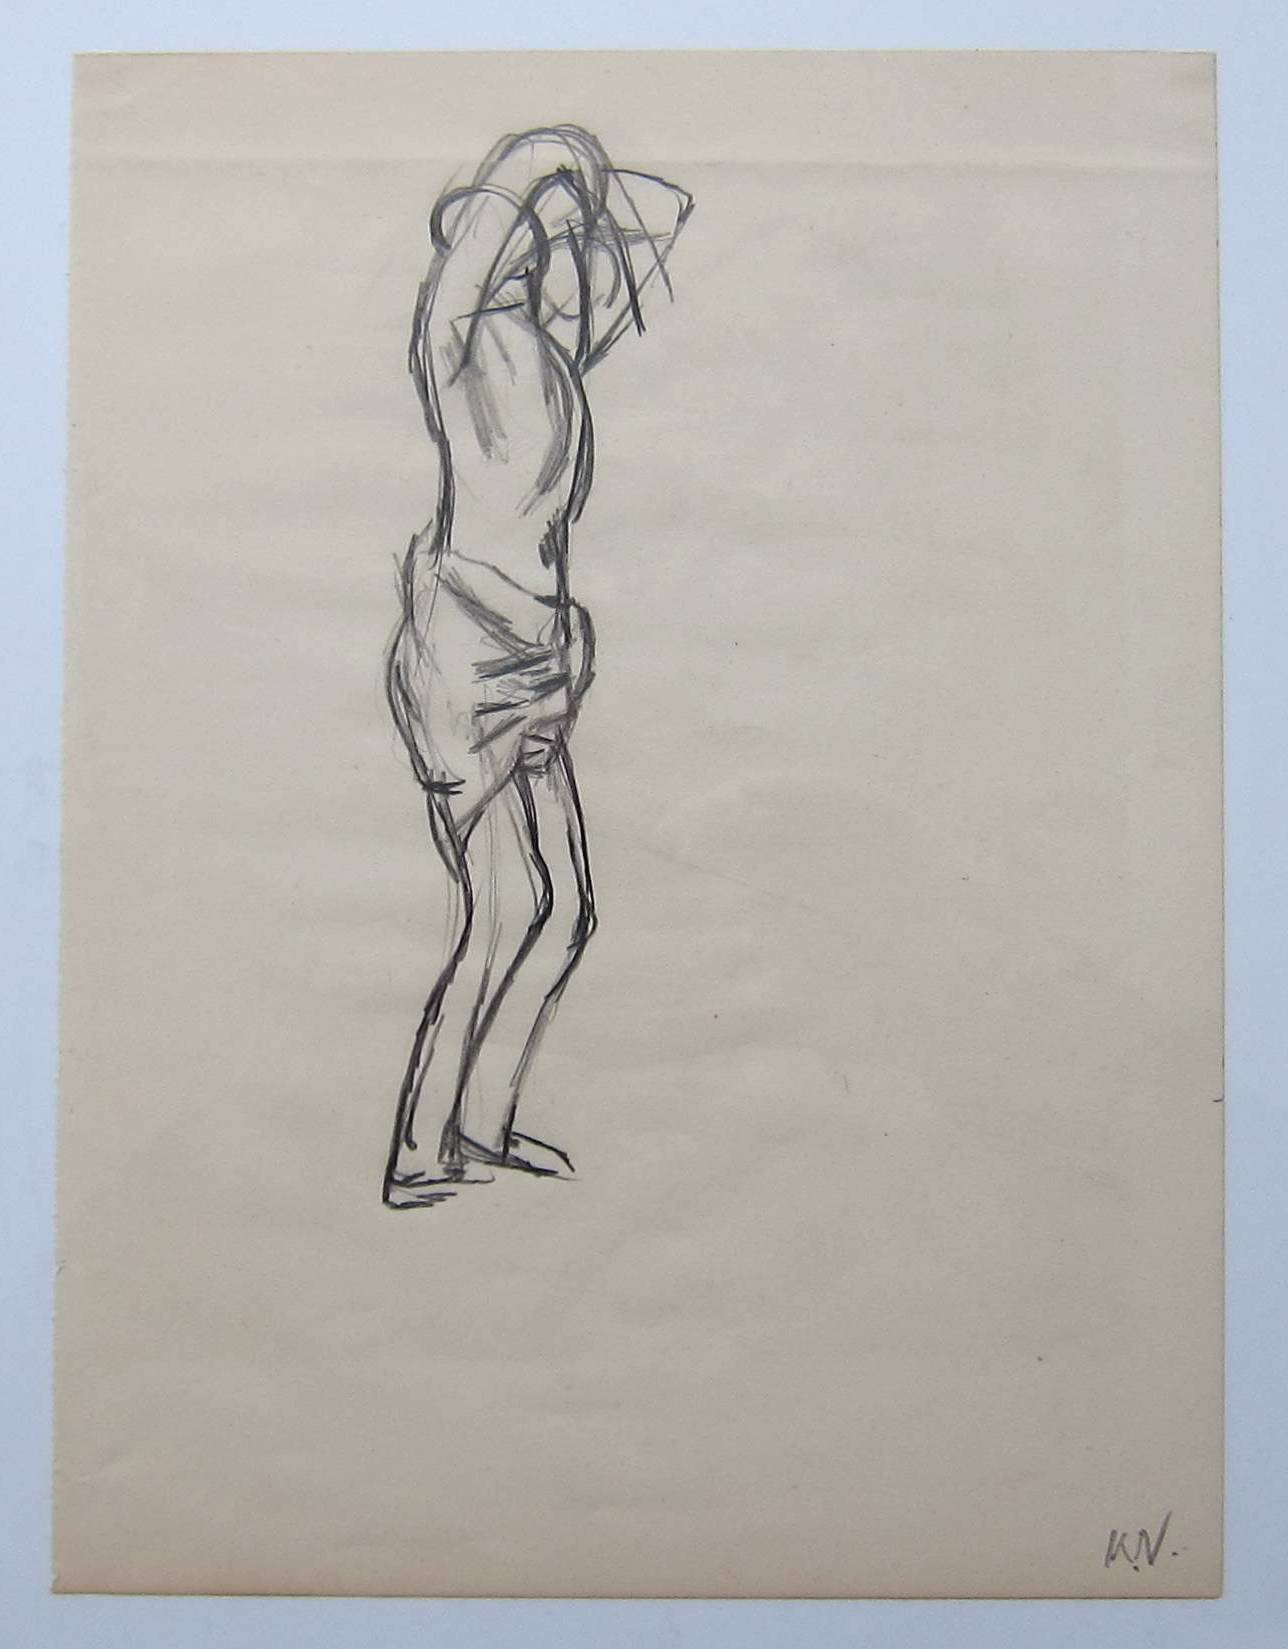 Lot 58 - KEITH VAUGHAN [1912-77]. Standing Figure with Arms Raised. pencil drawing. initials bottom right .